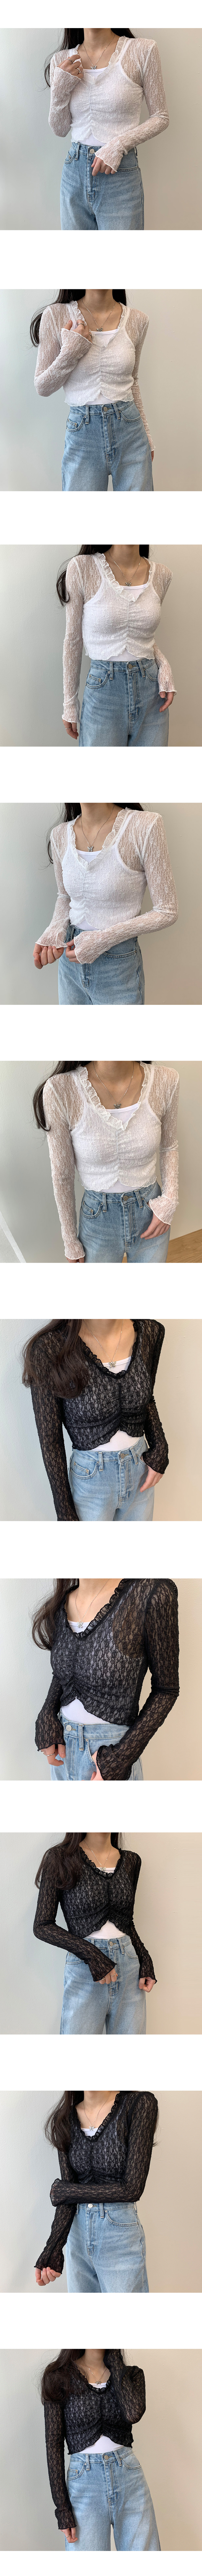 Lace shearing cropped layered frill blouse tee